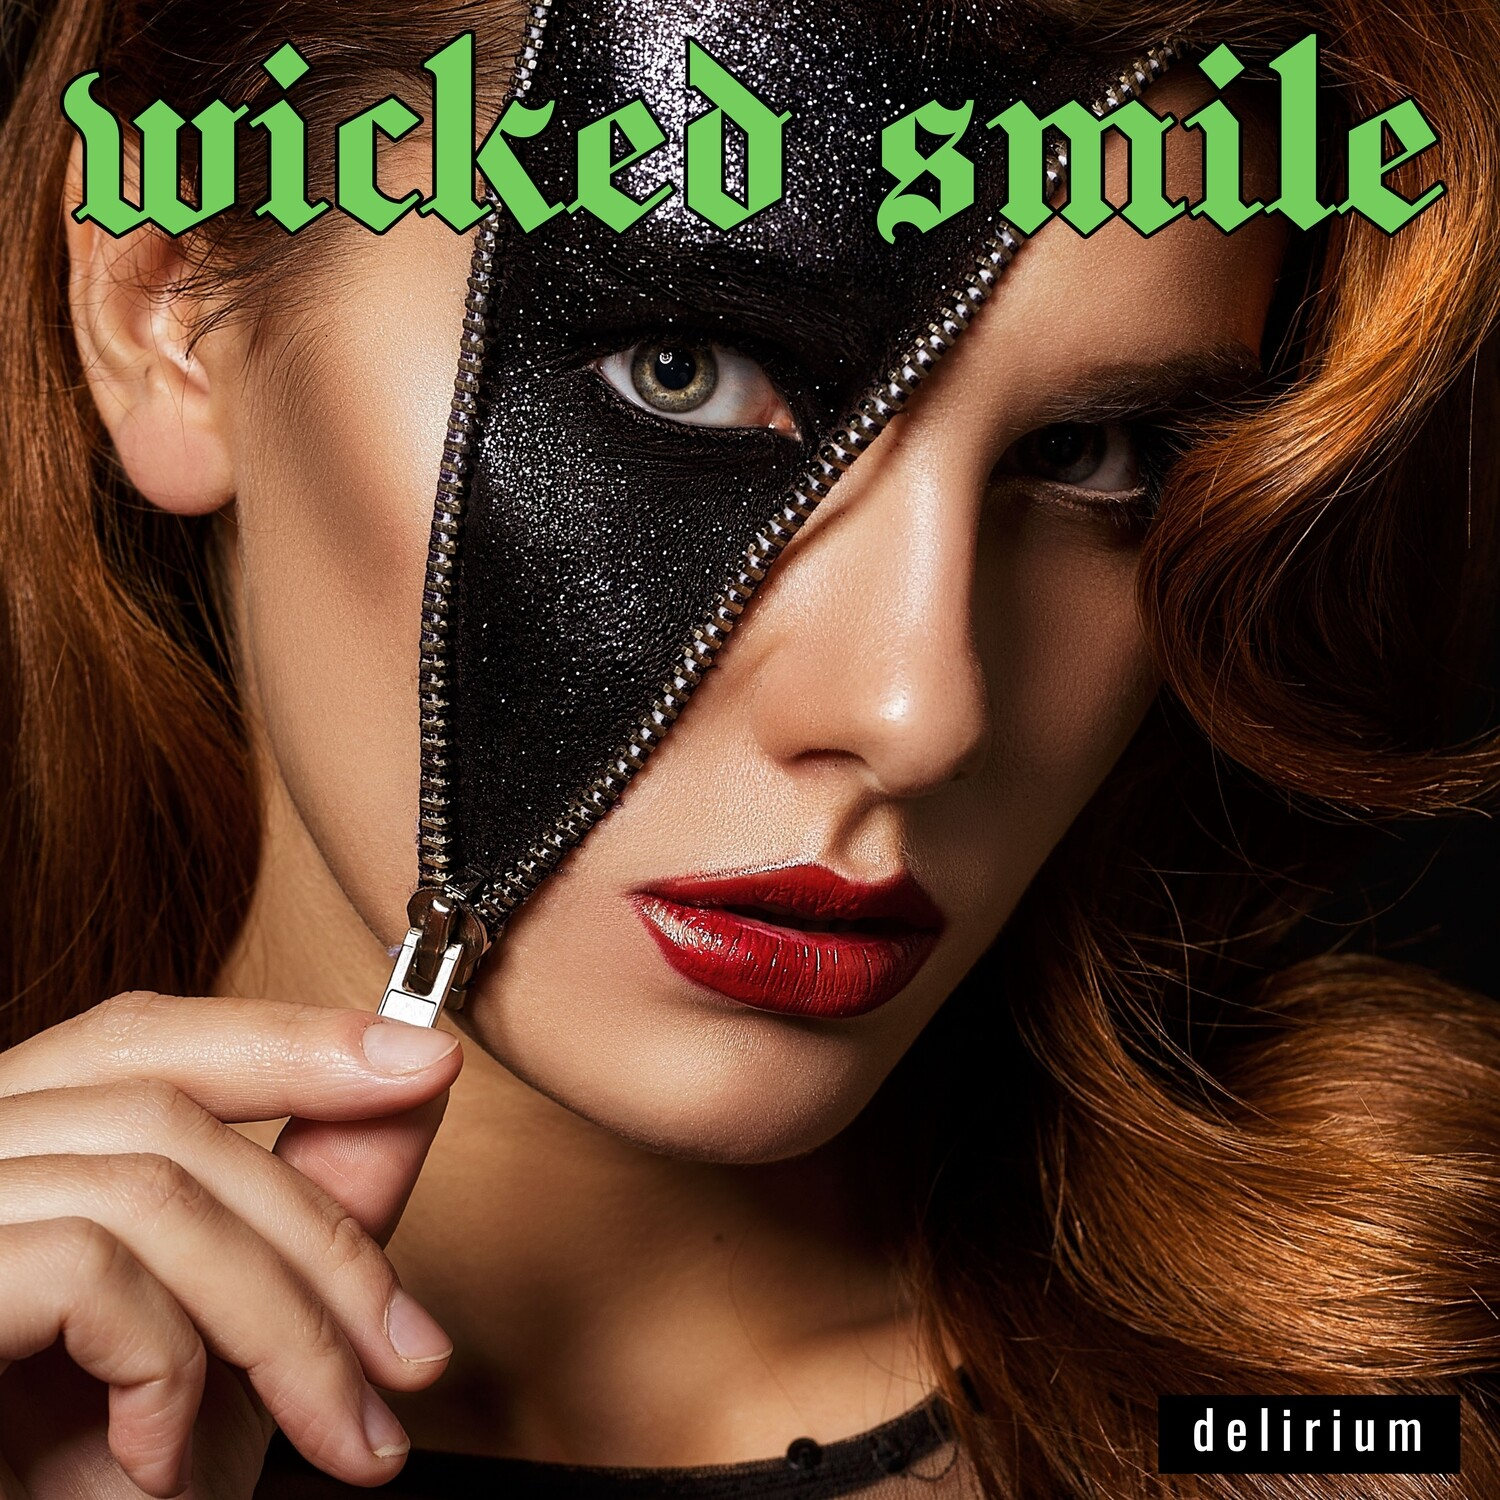 Wicked Smile debut ep/cd